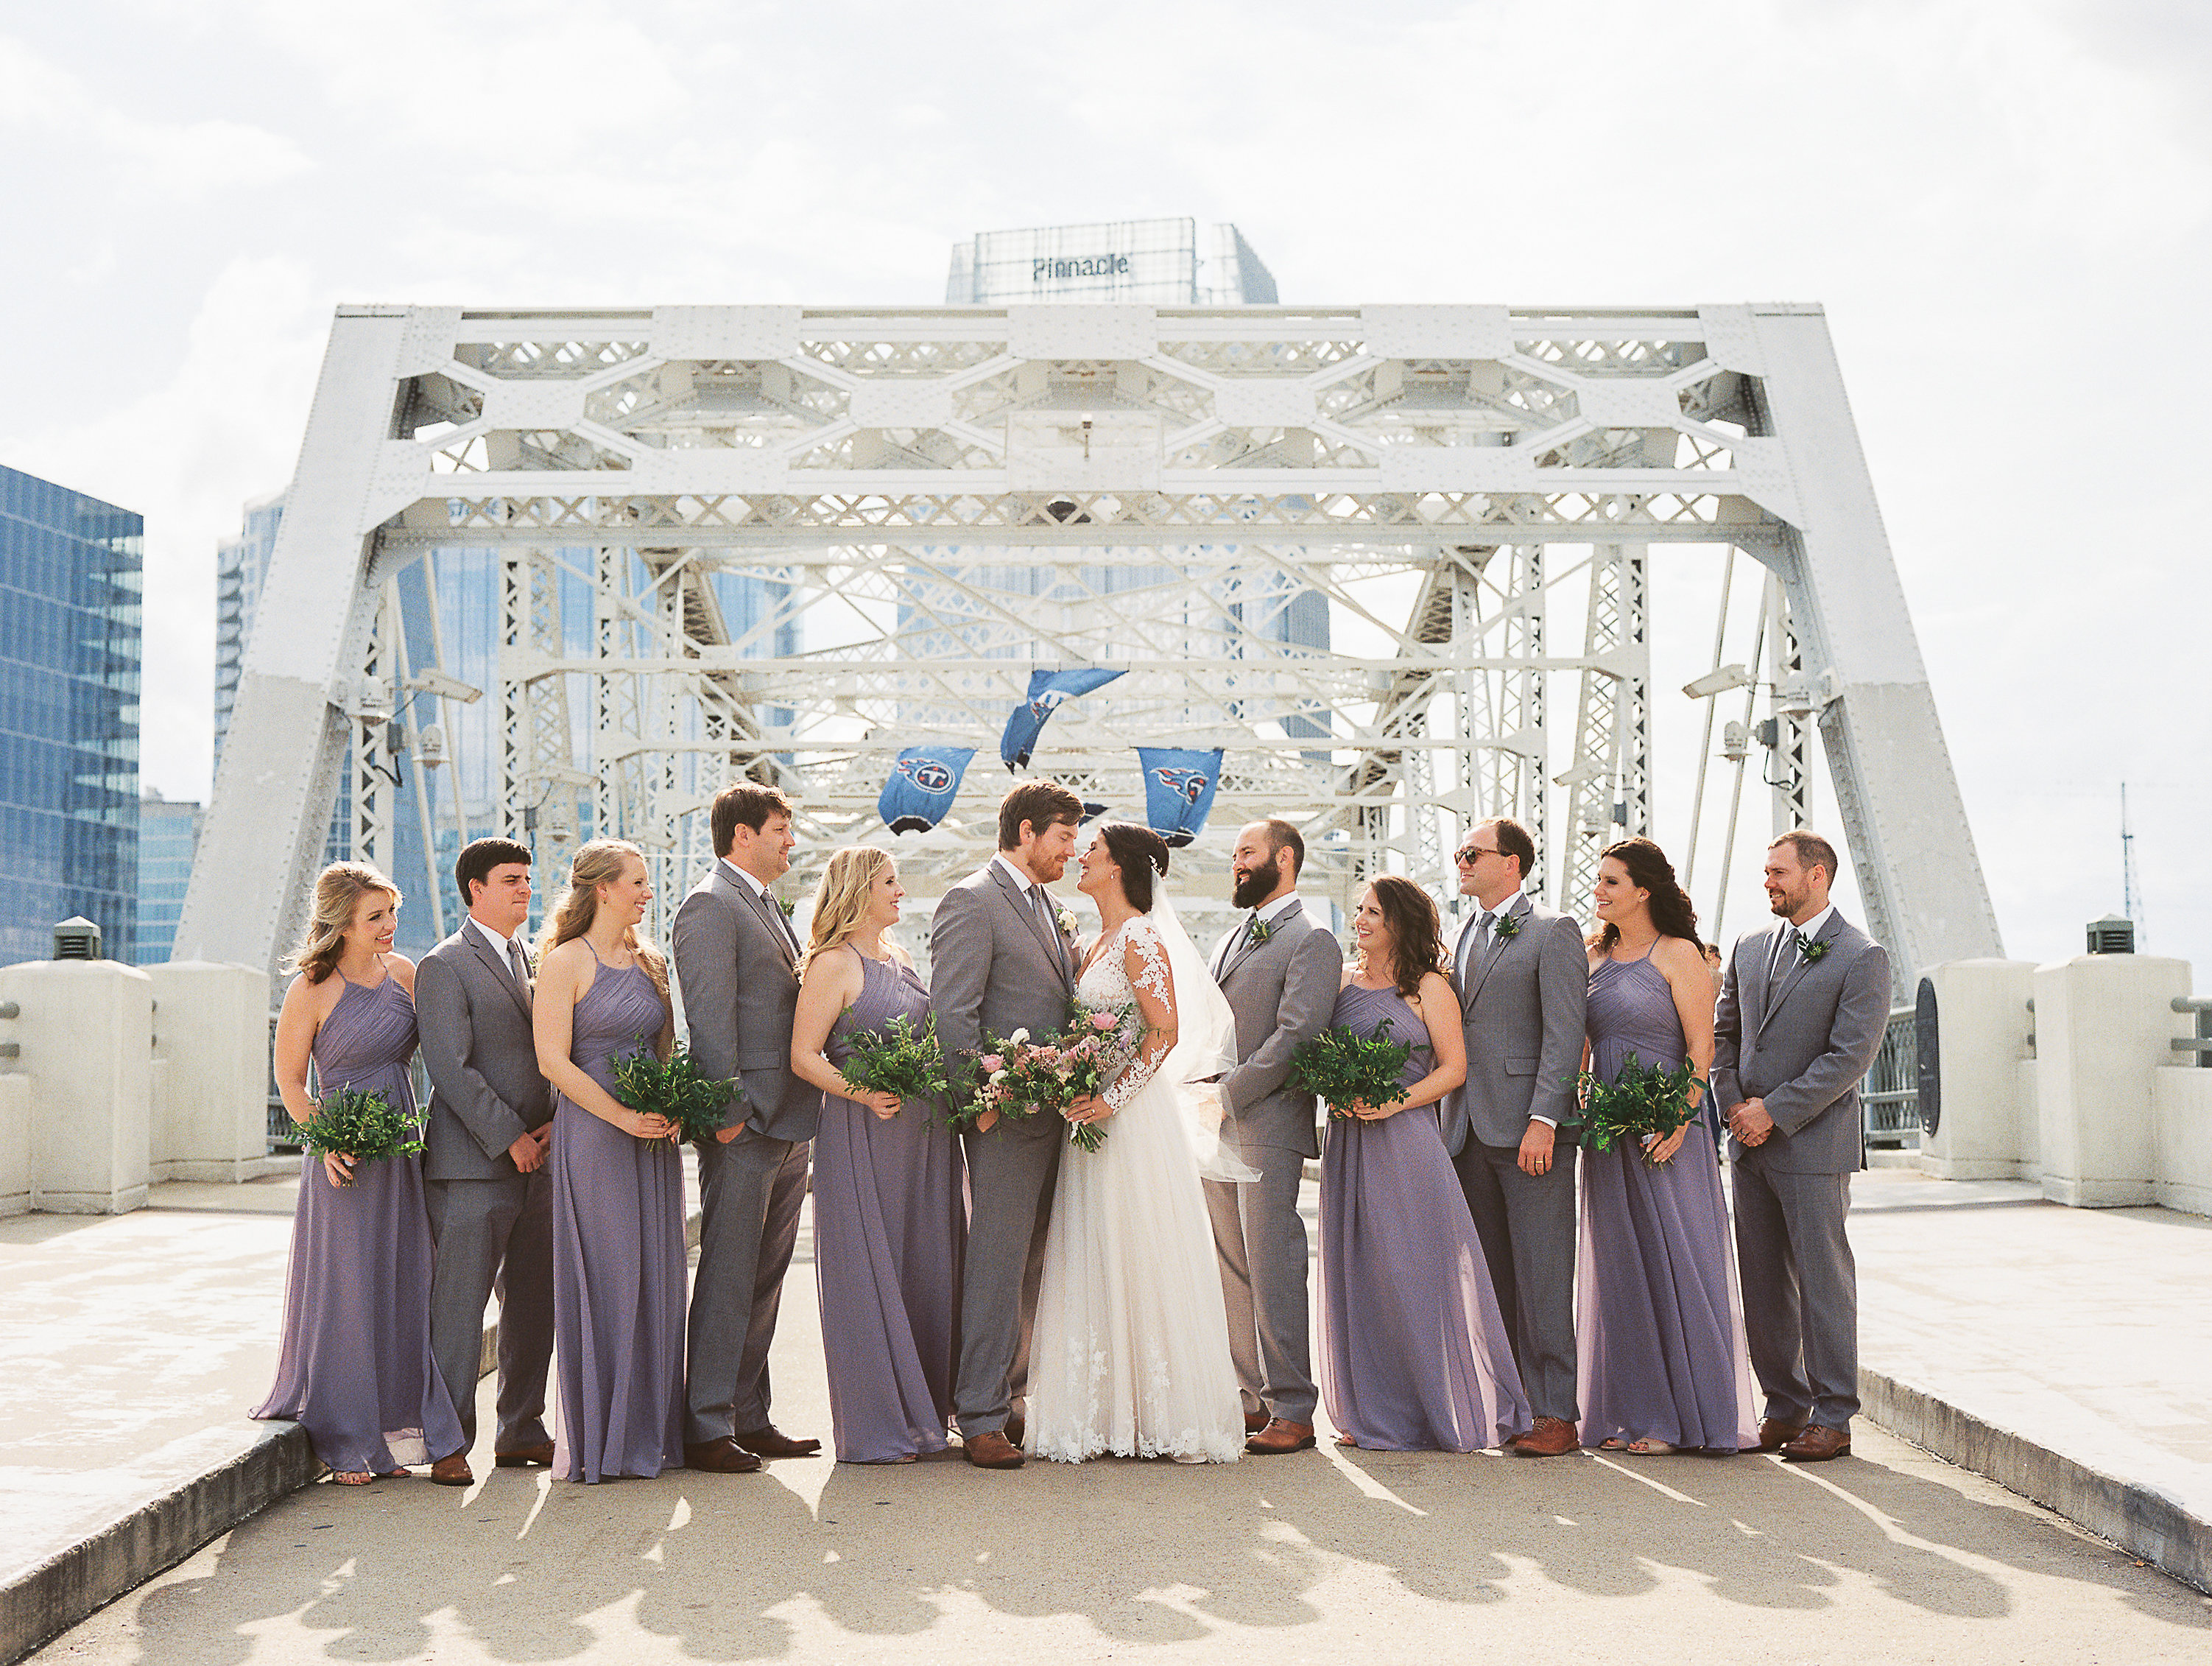 ratcliff_wedding-1345 Emily & Marcus: A Cozy Nashville Wedding Blog Invision Events Weddings    invision_events, birmingham_al, auburn_al, alabama, atlanta_ga, atl, georgia, wedding_planner, wedding_designer, weddings, photography, wedding_planning